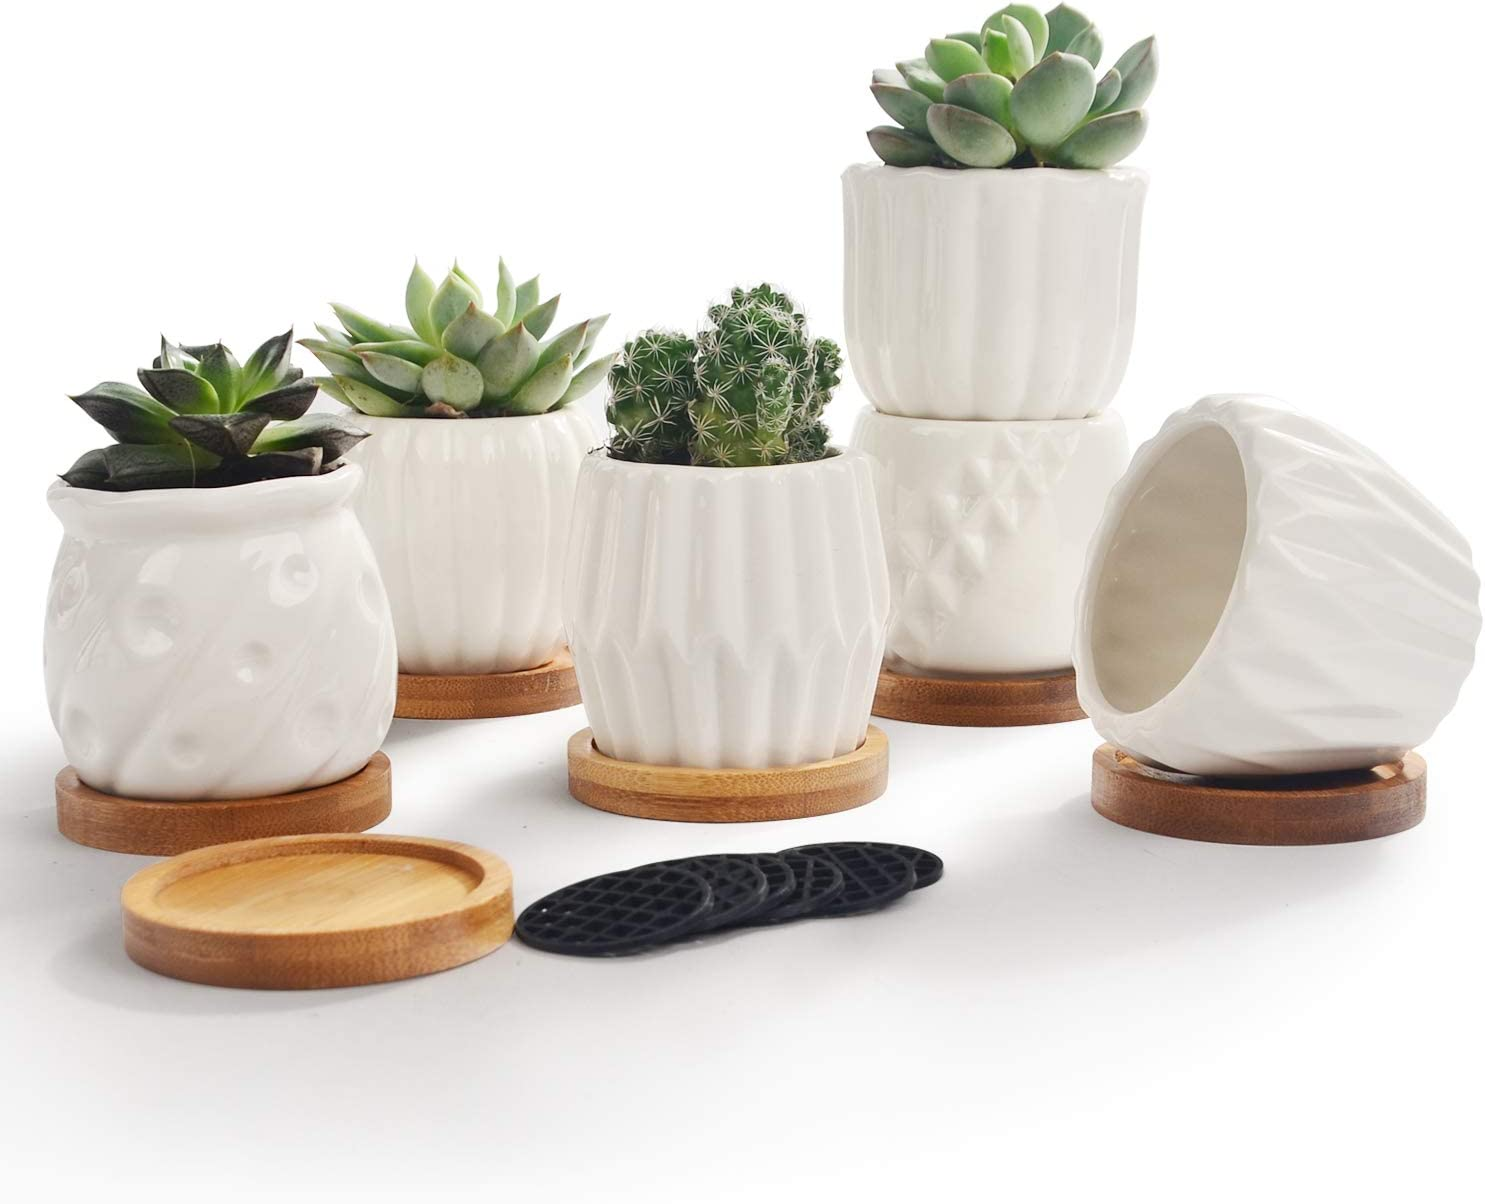 Set of 6 White Simple Porcelain Planters for Small Plant Pots Succulent Cactus with Drainage and Saucer for Home Office Decoration Gift(White Stripes)